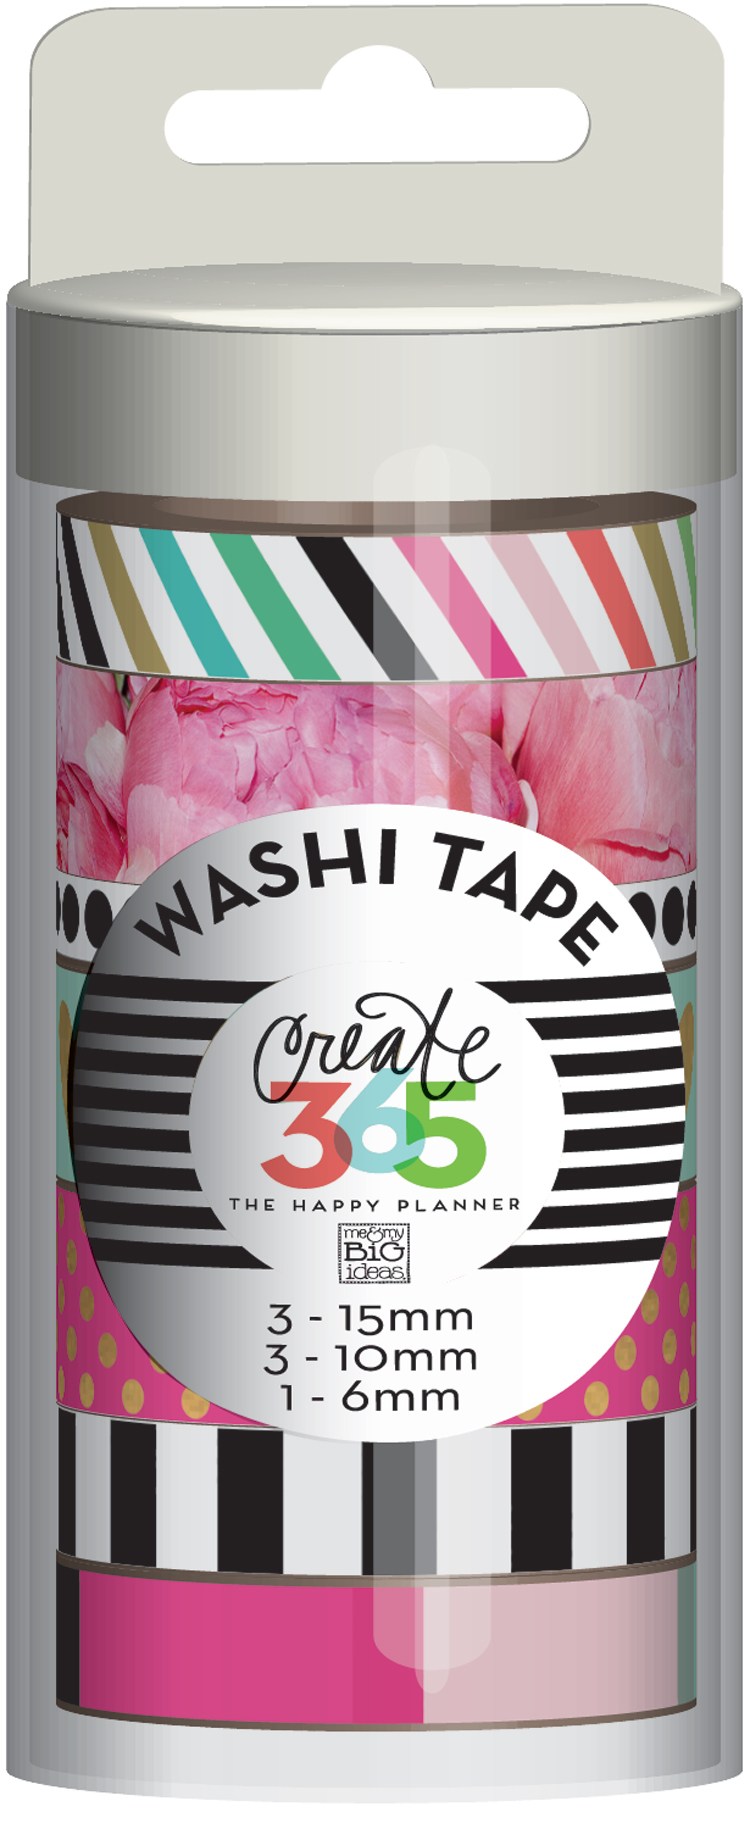 'Peony' washi tape tube for The Happy Planner™ | me & my BIG ideas.jpg